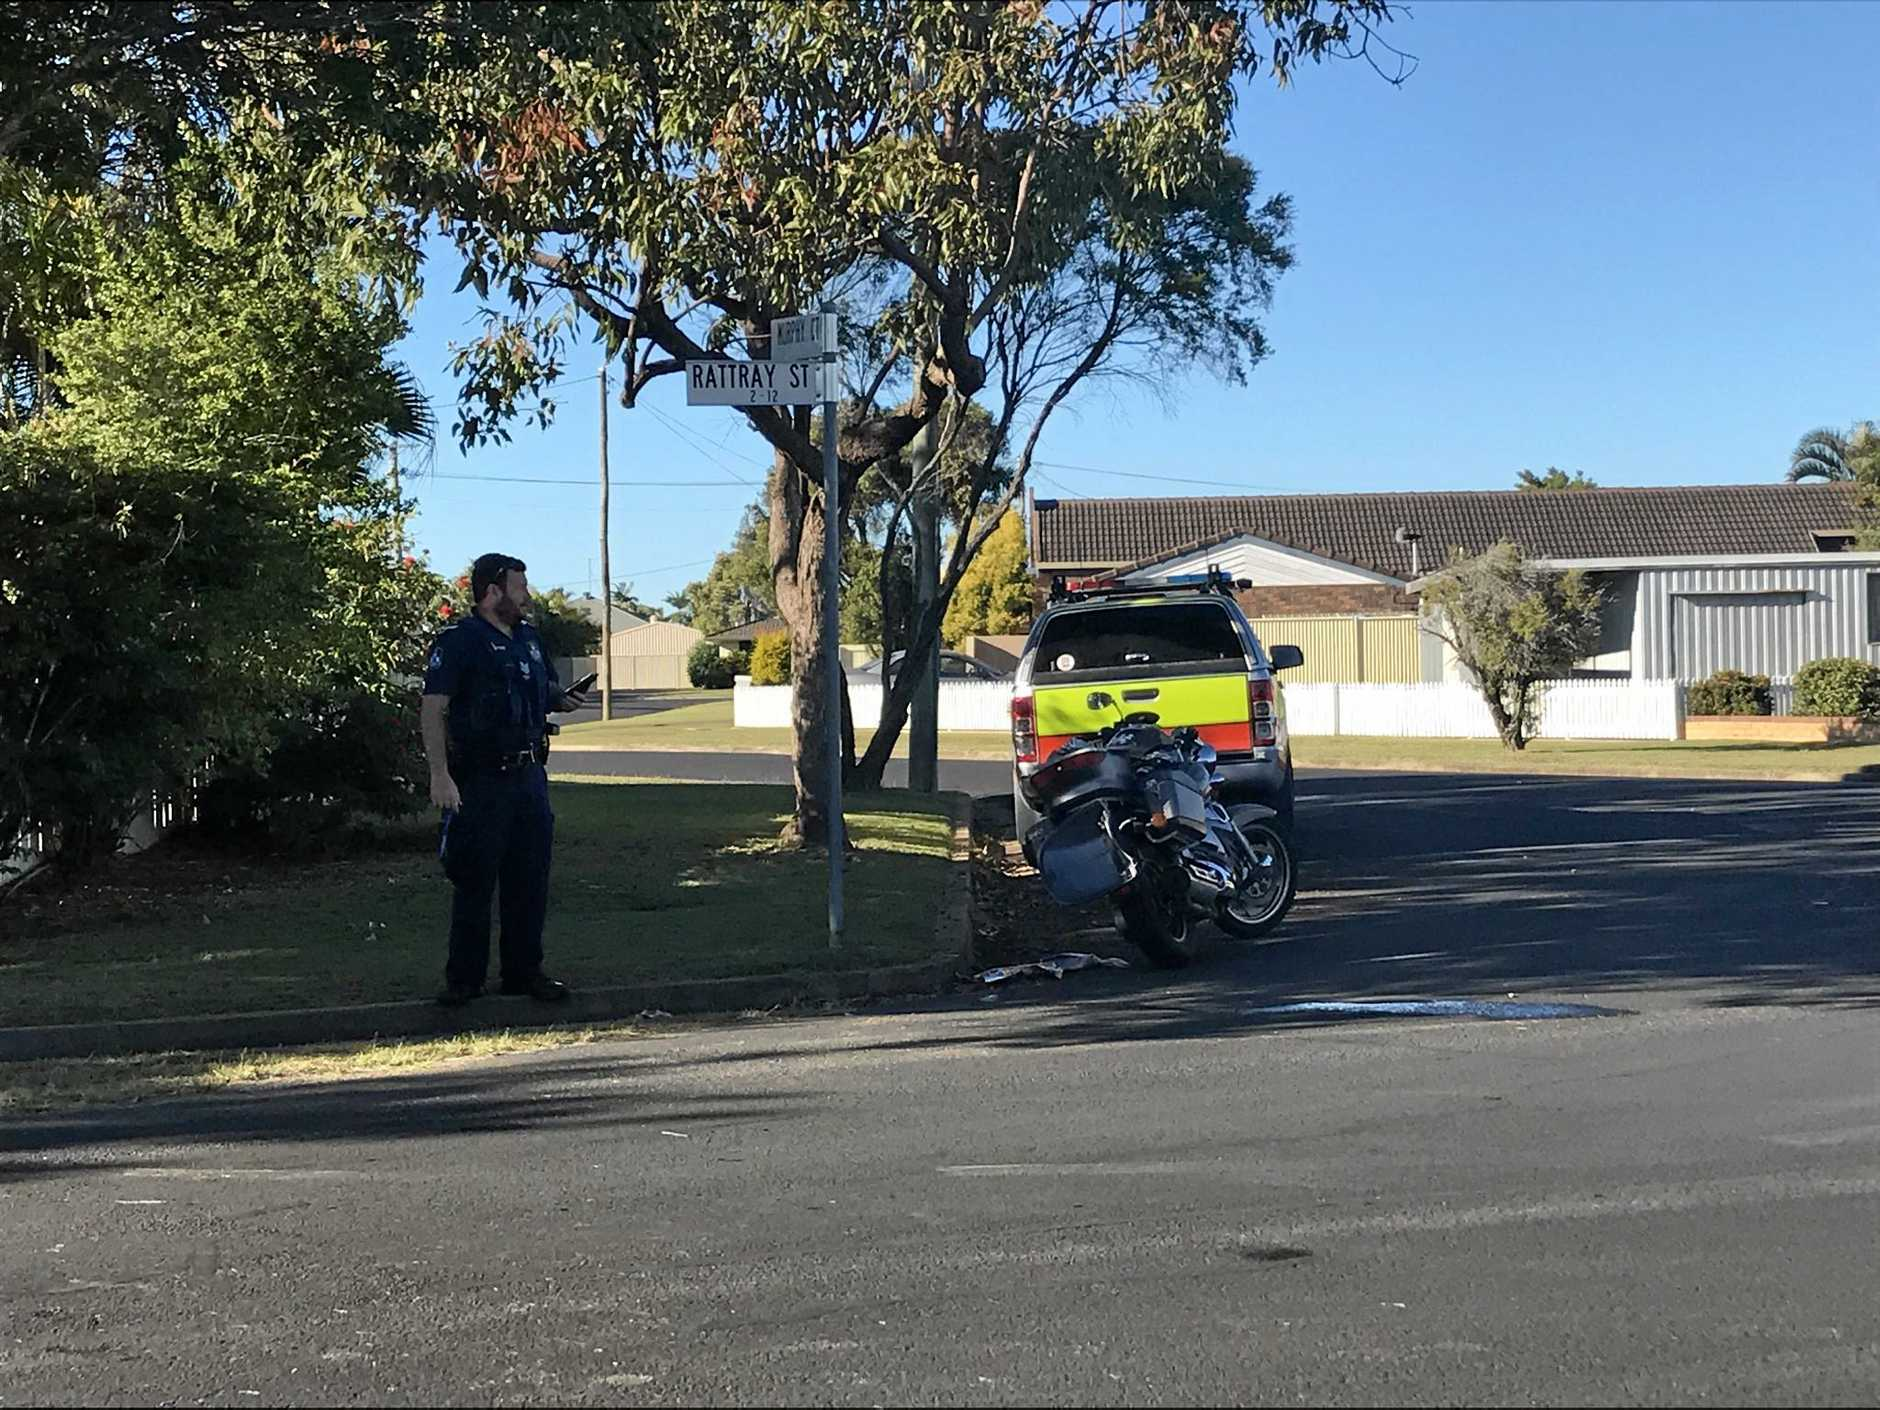 A police officer assesses the scene of the crash.